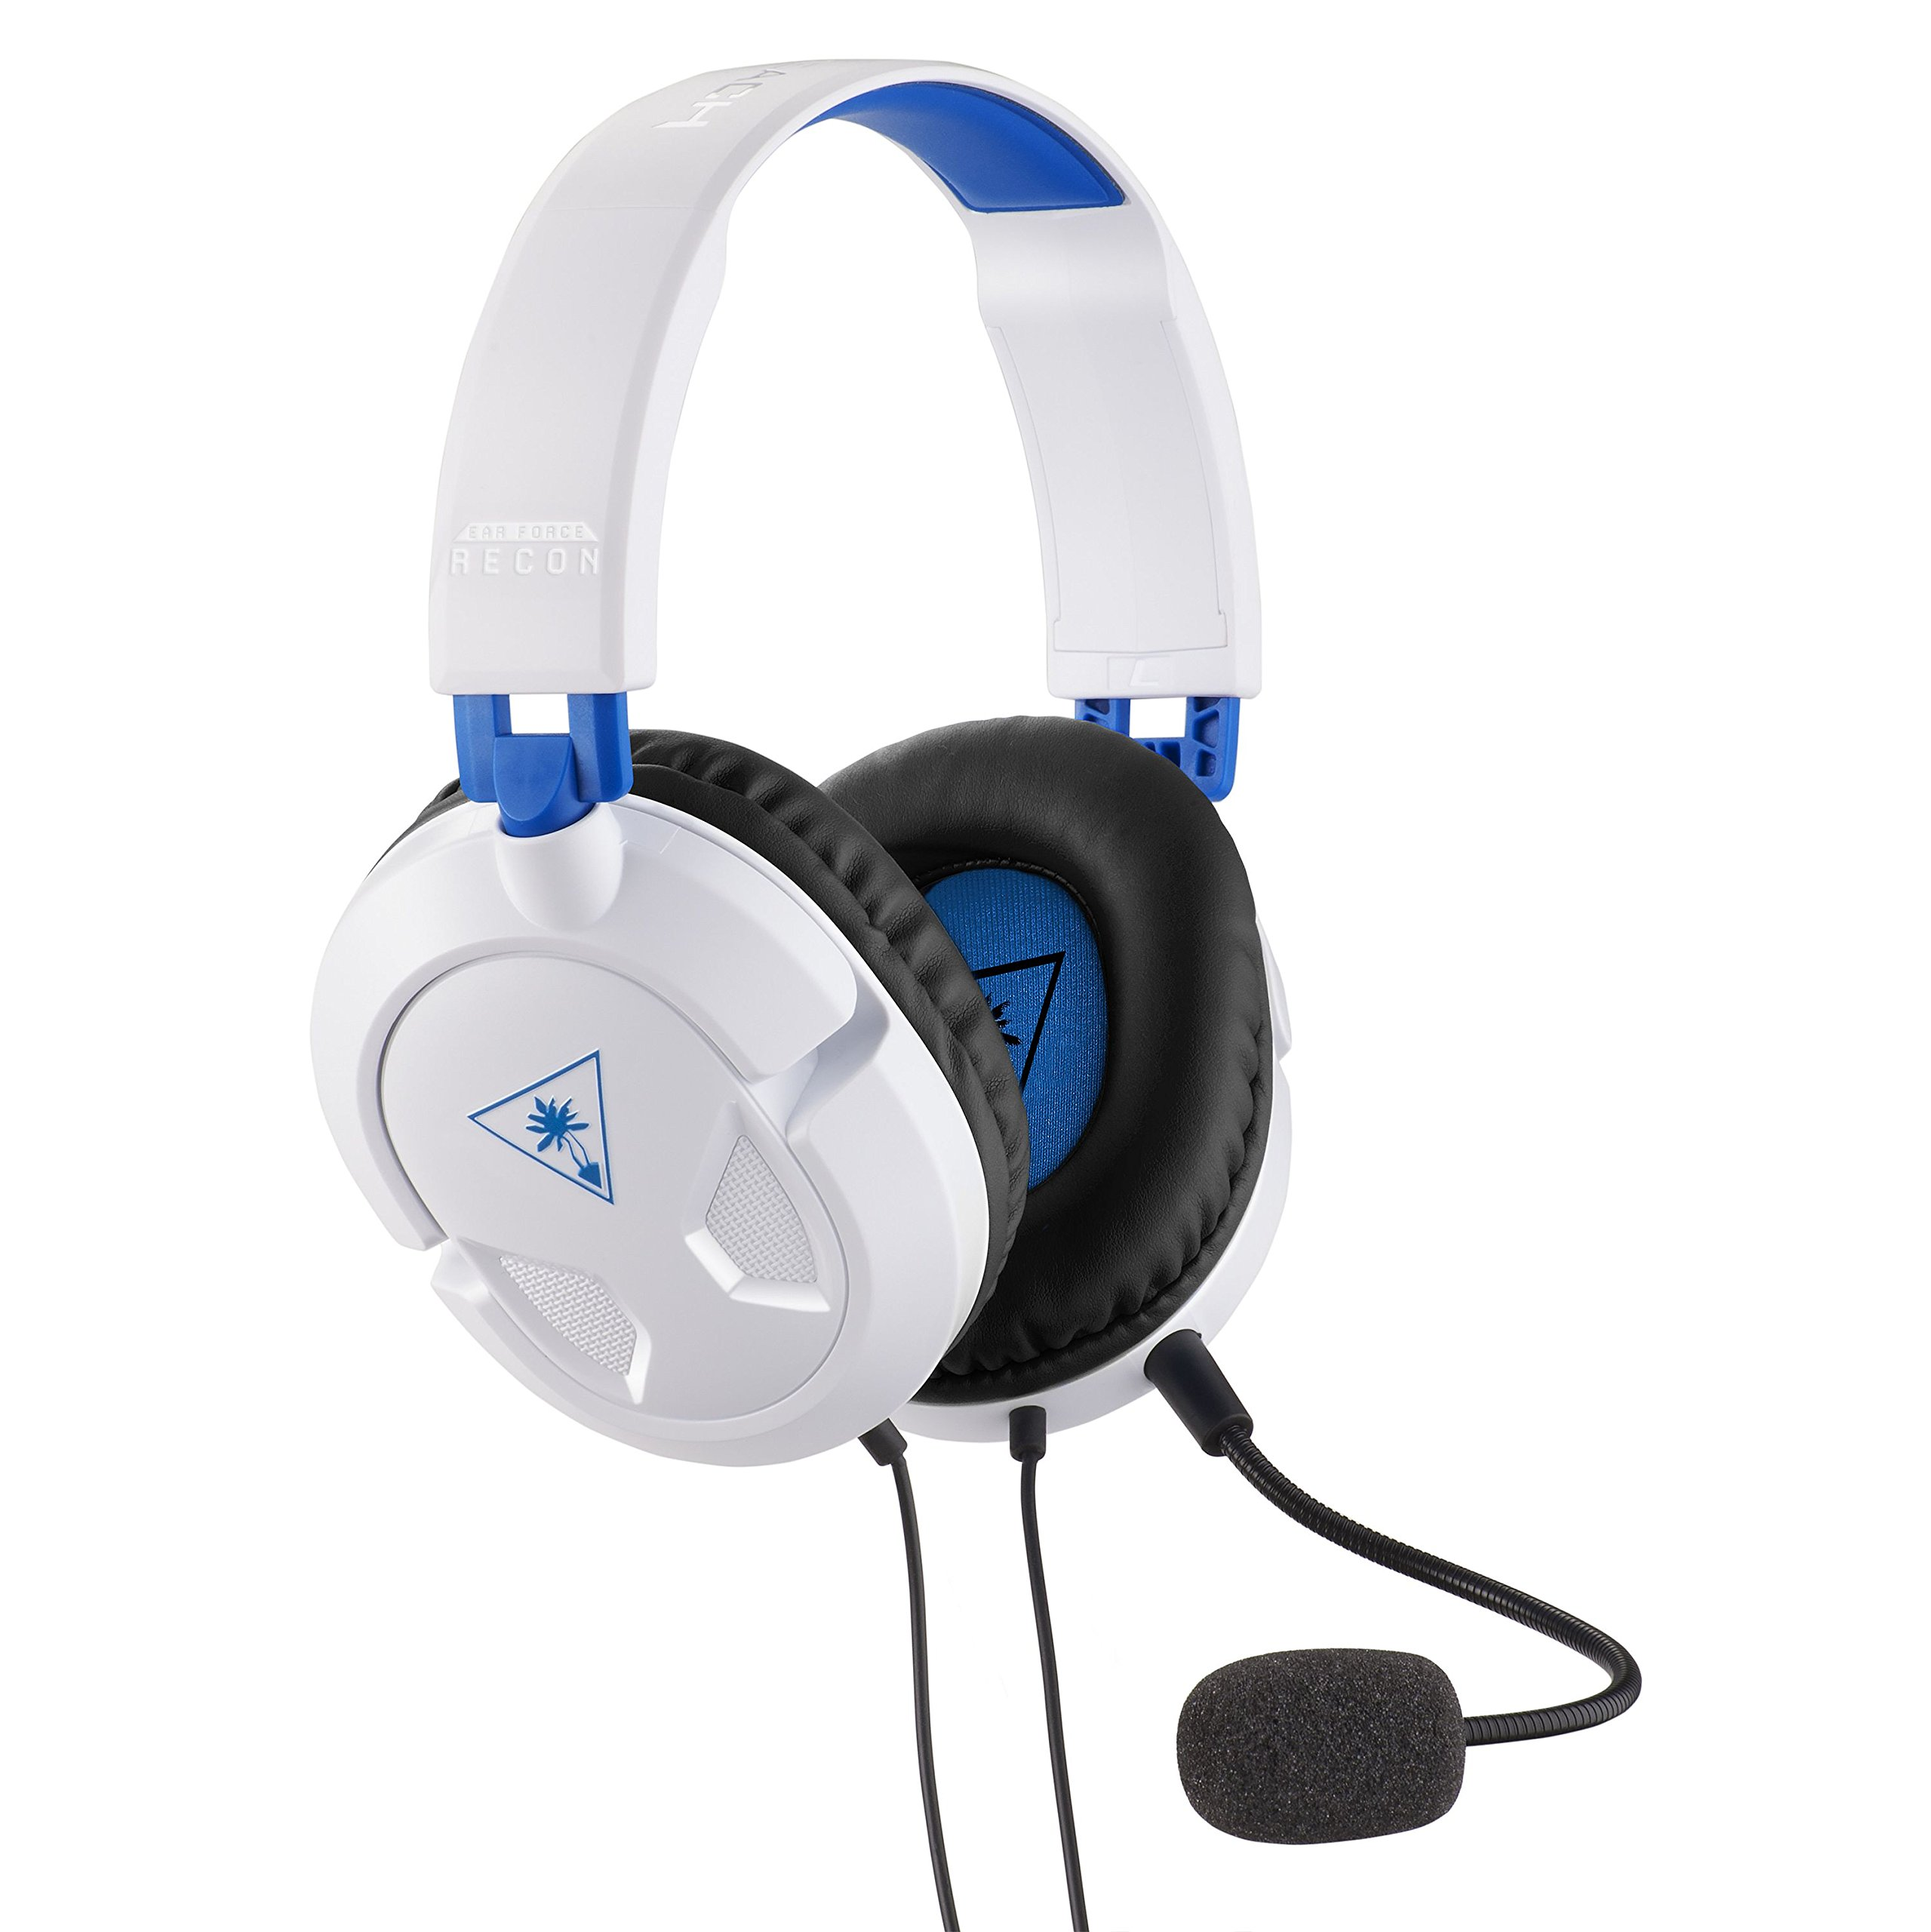 Auriculares Gamer : Turtle Beach Ear Force Recon 50p White